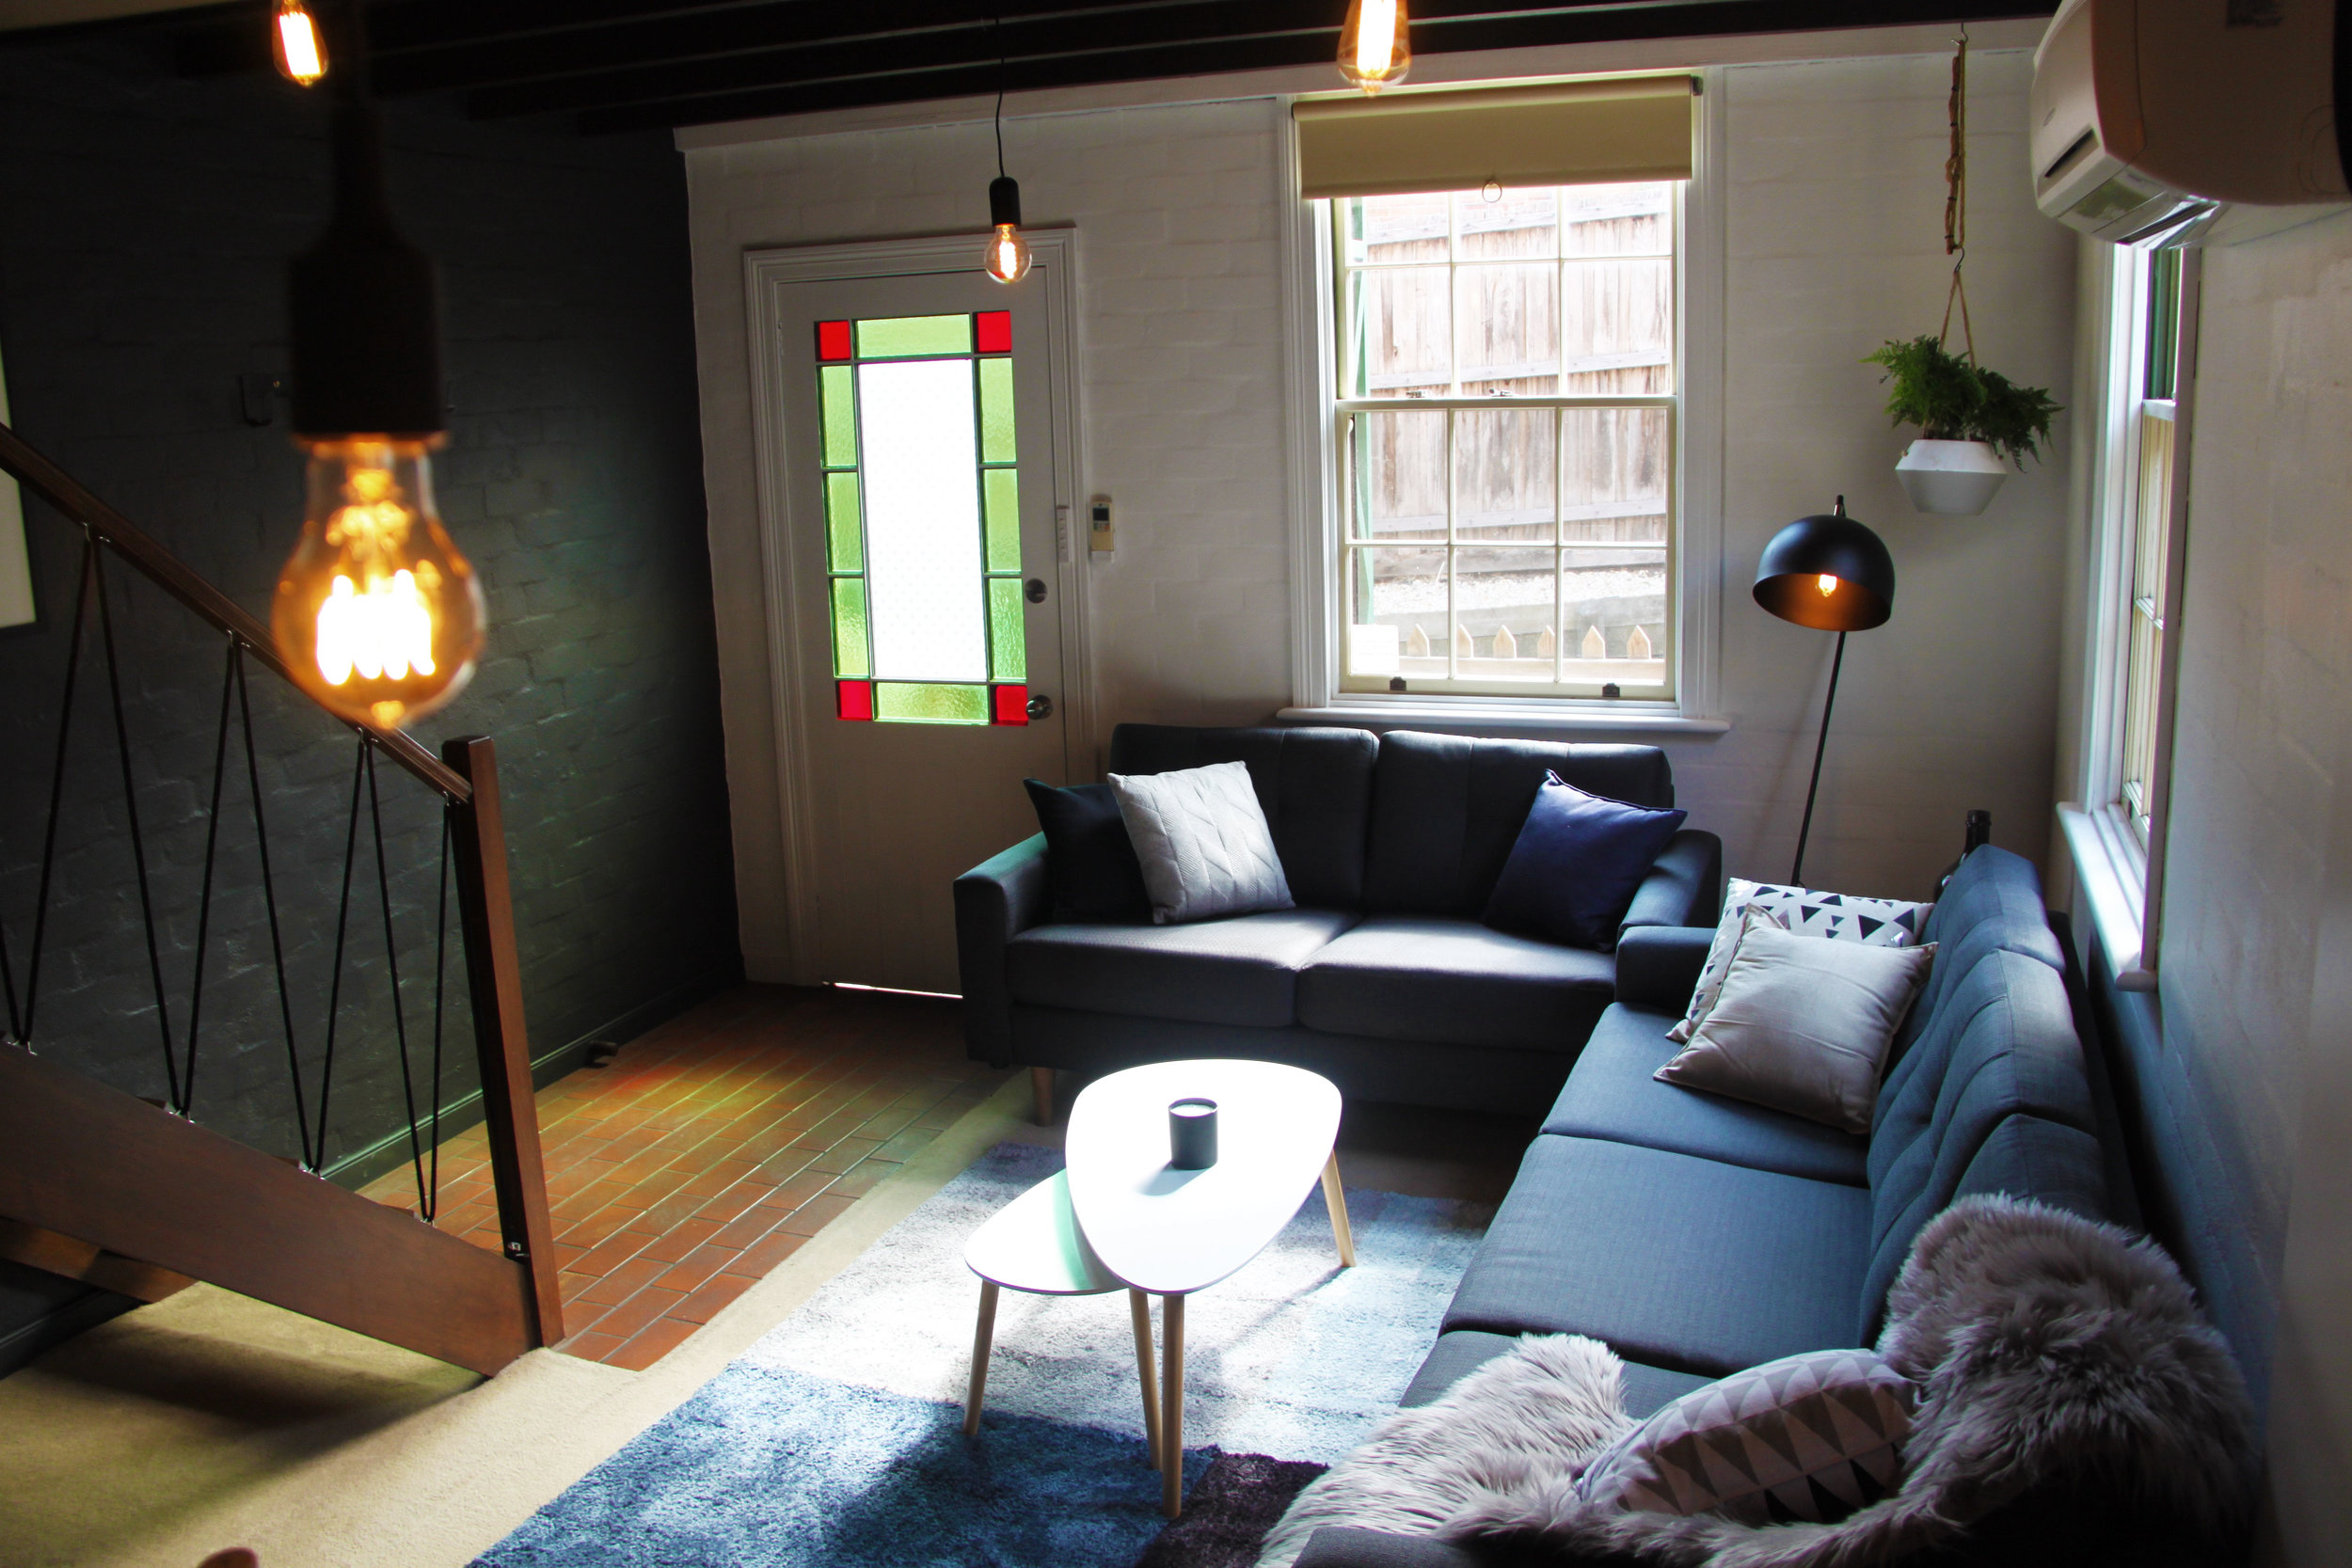 SPORTIES AIR BNB APARTMENT    This really is your perfect home away from home. Newly re-furbished with a touch of style & flair - Sporties Apartment aims to impress. Sleeping up to 5 guests and directly across the road from the Hotel - you can book this trendy apartment via AirBnb  BOOK HERE